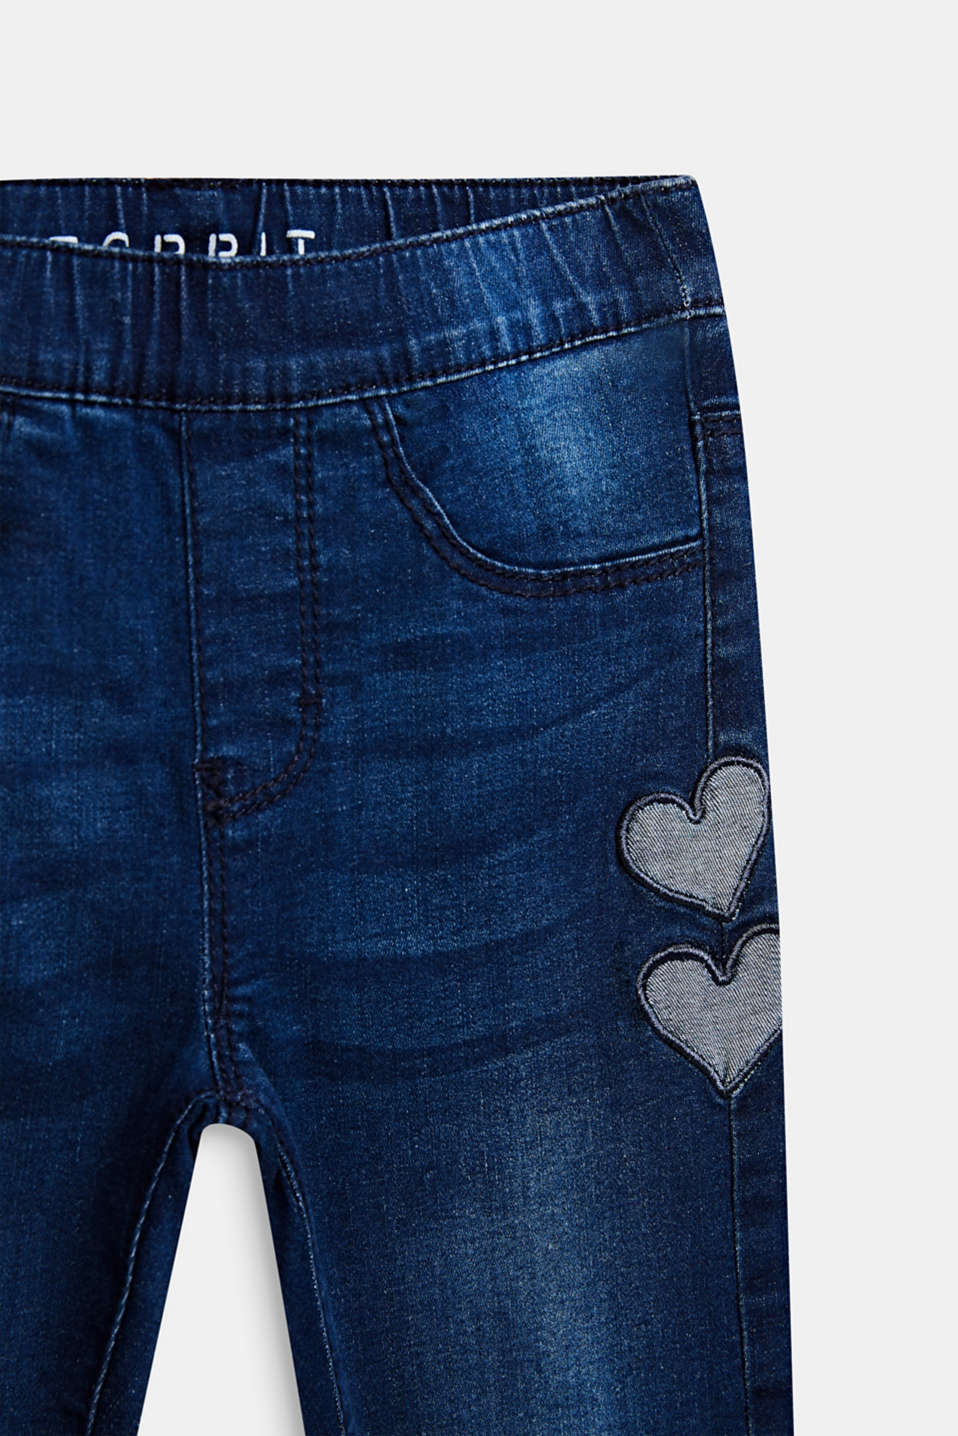 Heart pattern stretch jeans with an elasticated waistband, DARK INDIGO DE, detail image number 2